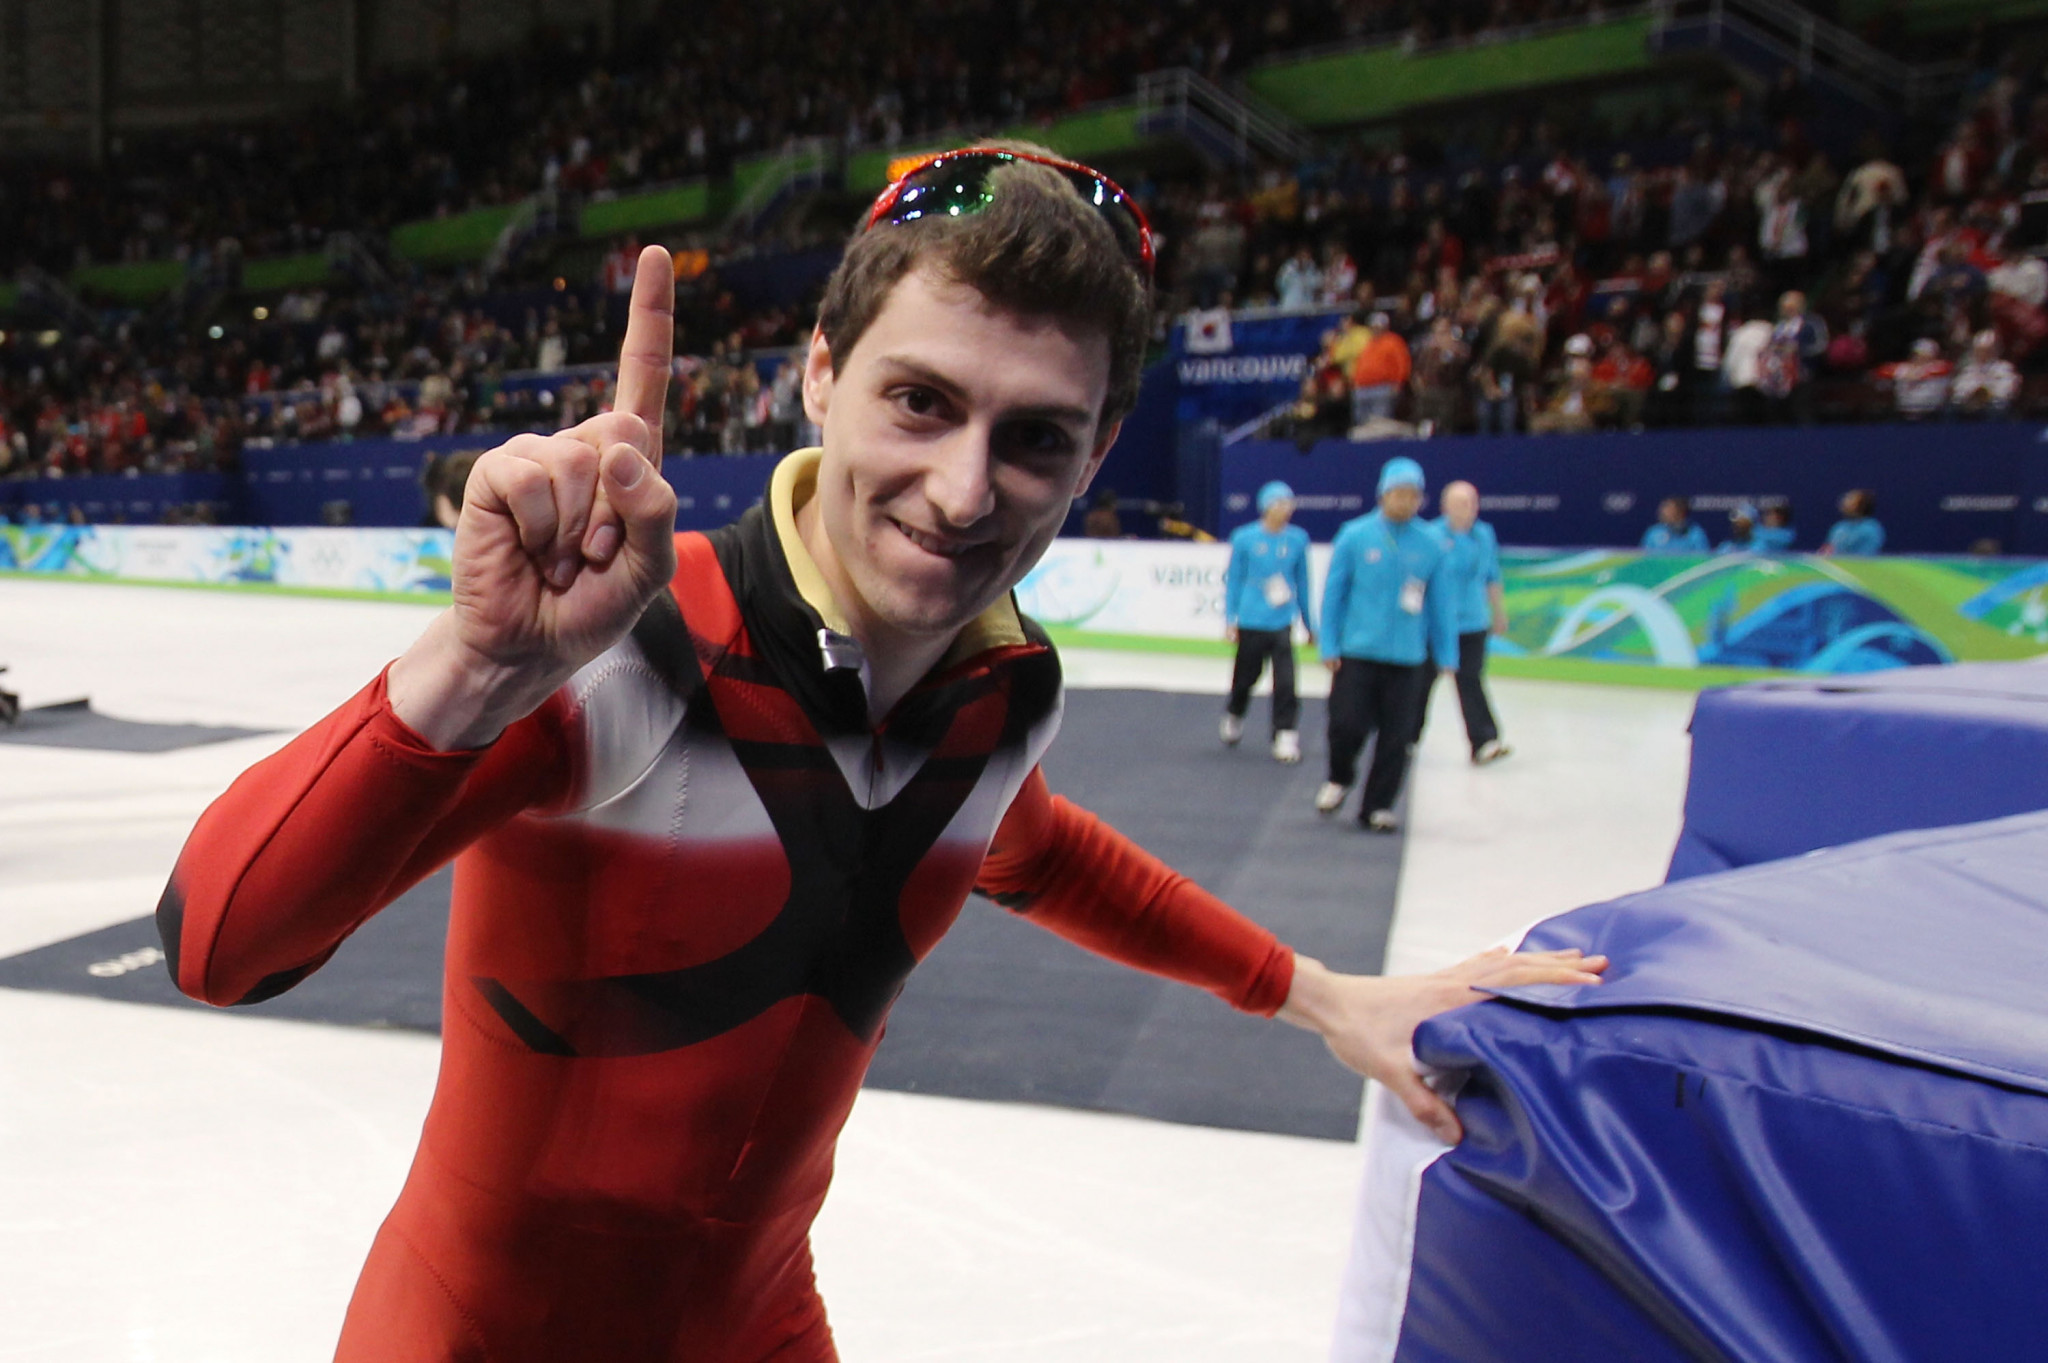 Guillaume Bastille has retired from short track speed skating ©Getty Images